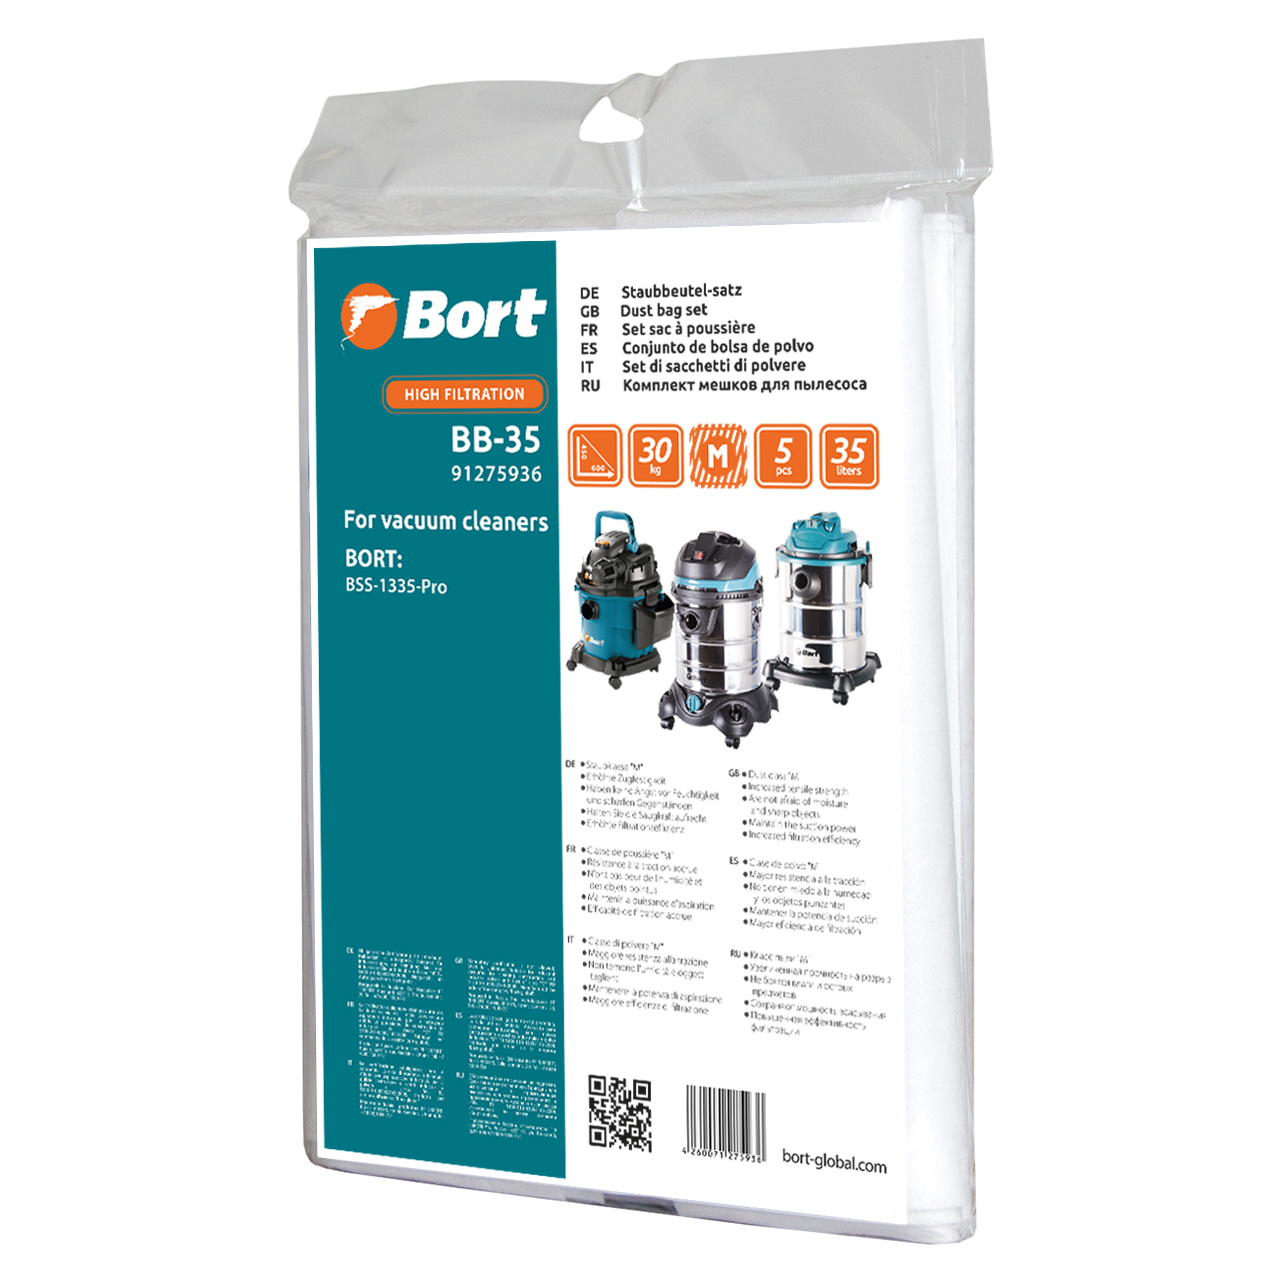 Bags set dust collection for vacuum Cleaner bort BB-35 (volume 35, 5 pcs, suitable for BSS-1335-Pro) стоимость